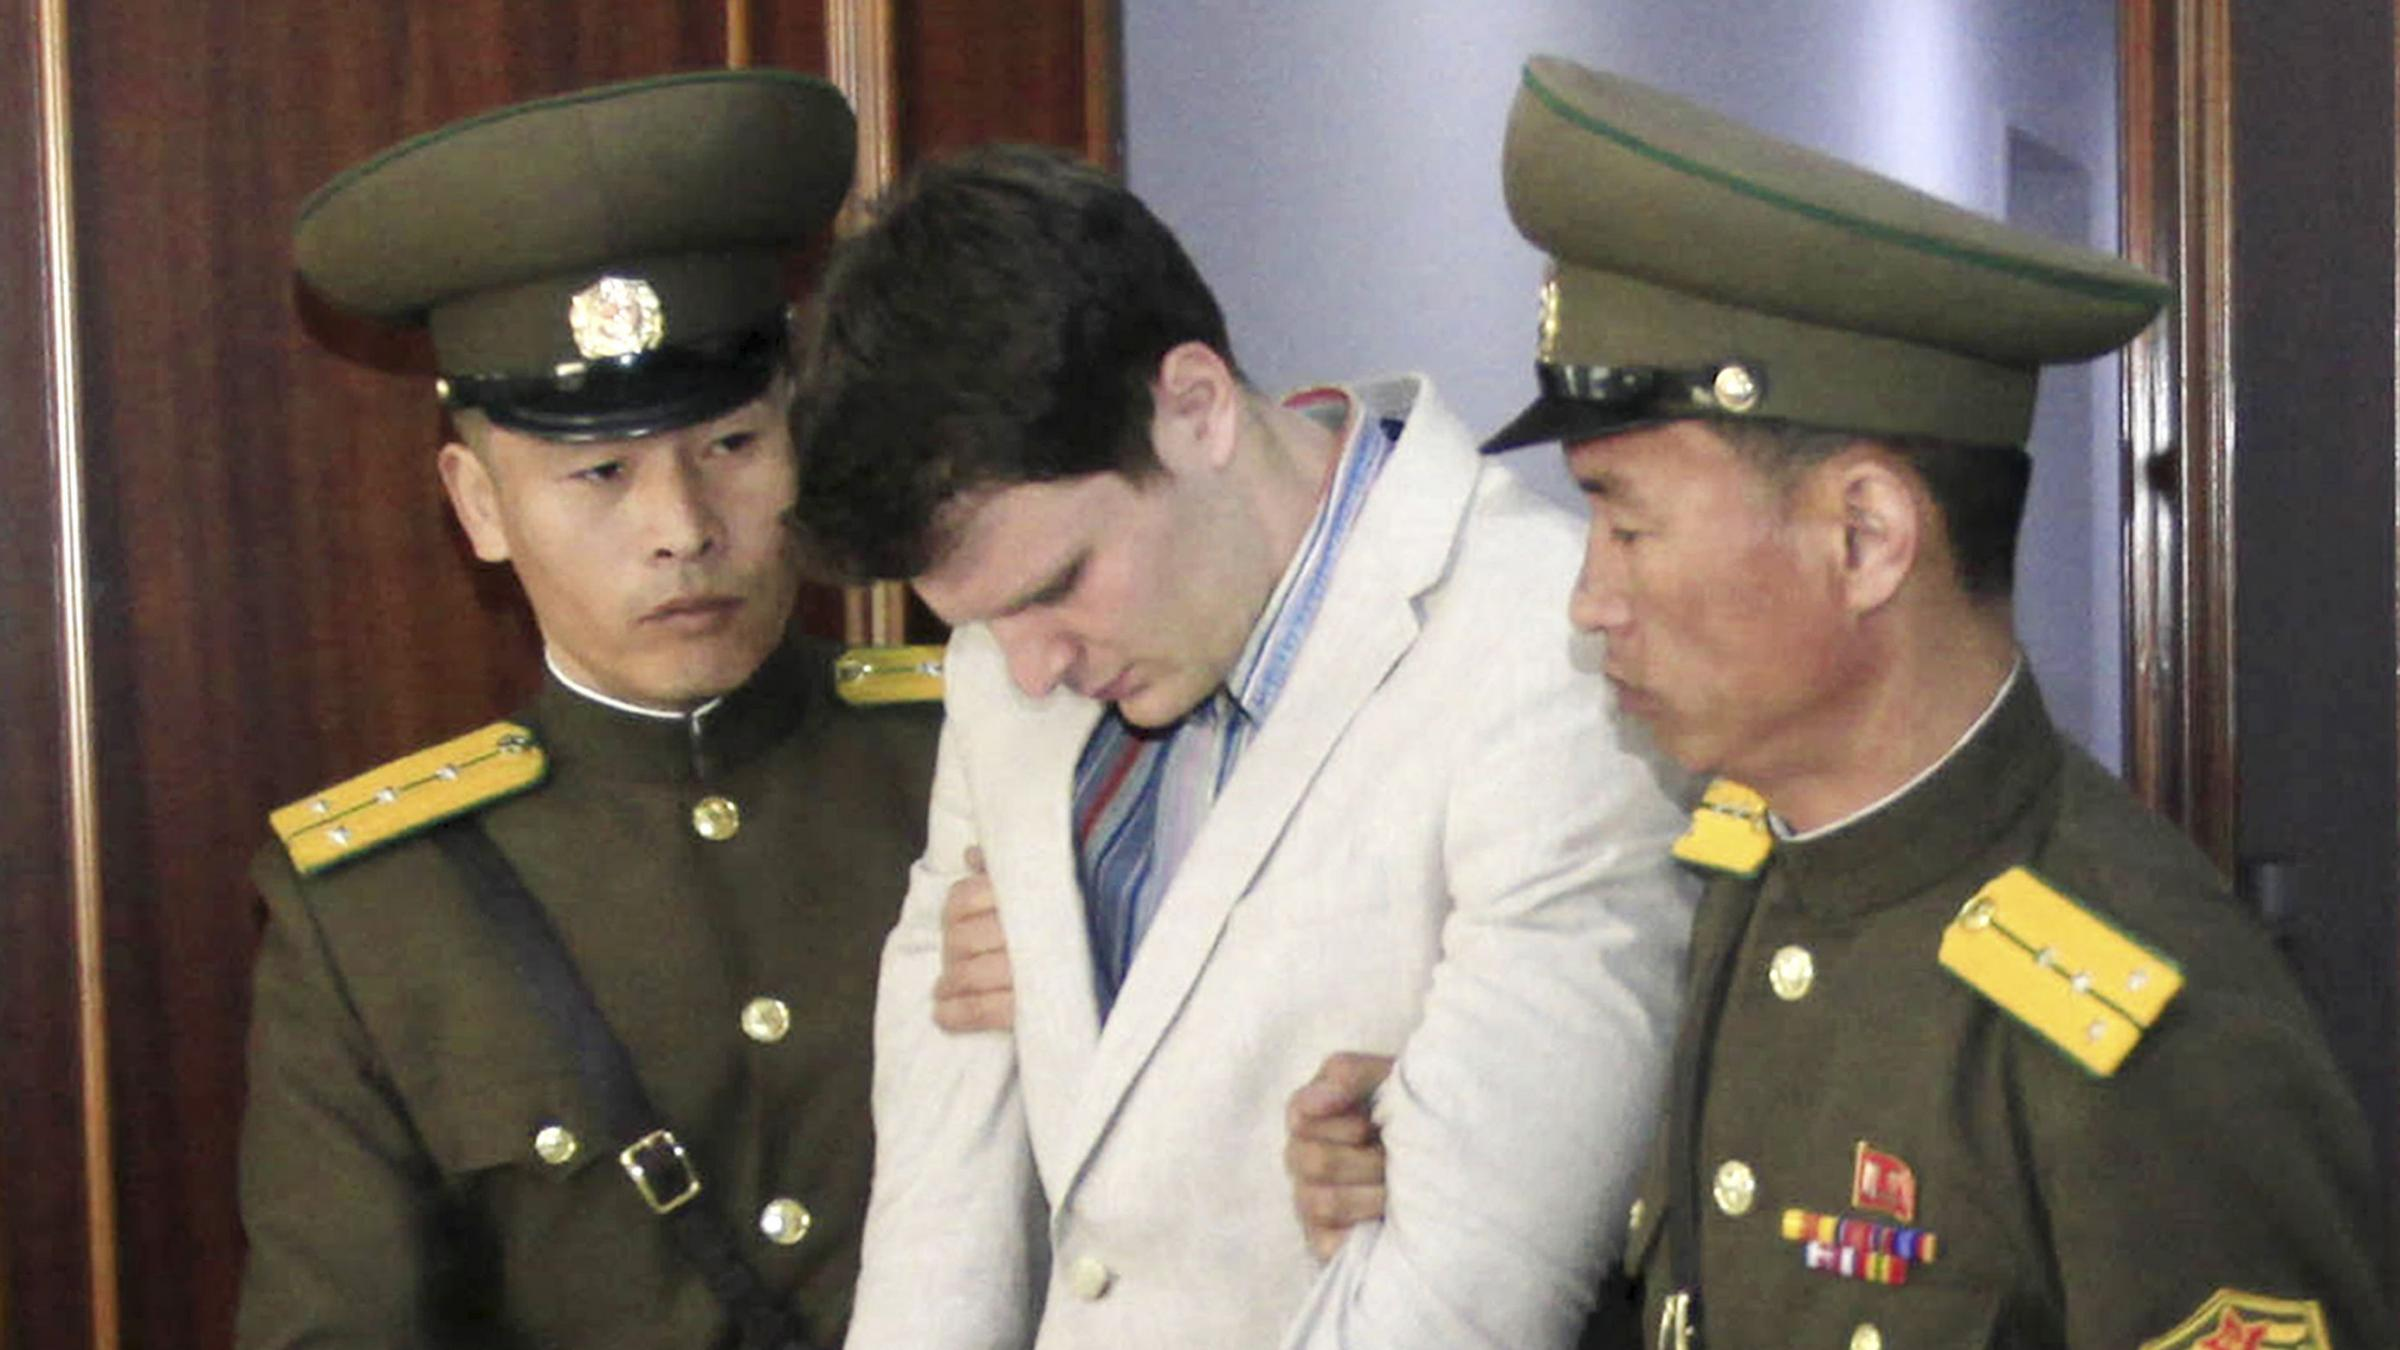 US Student Freed From North Korea Has Severe Brain Injury